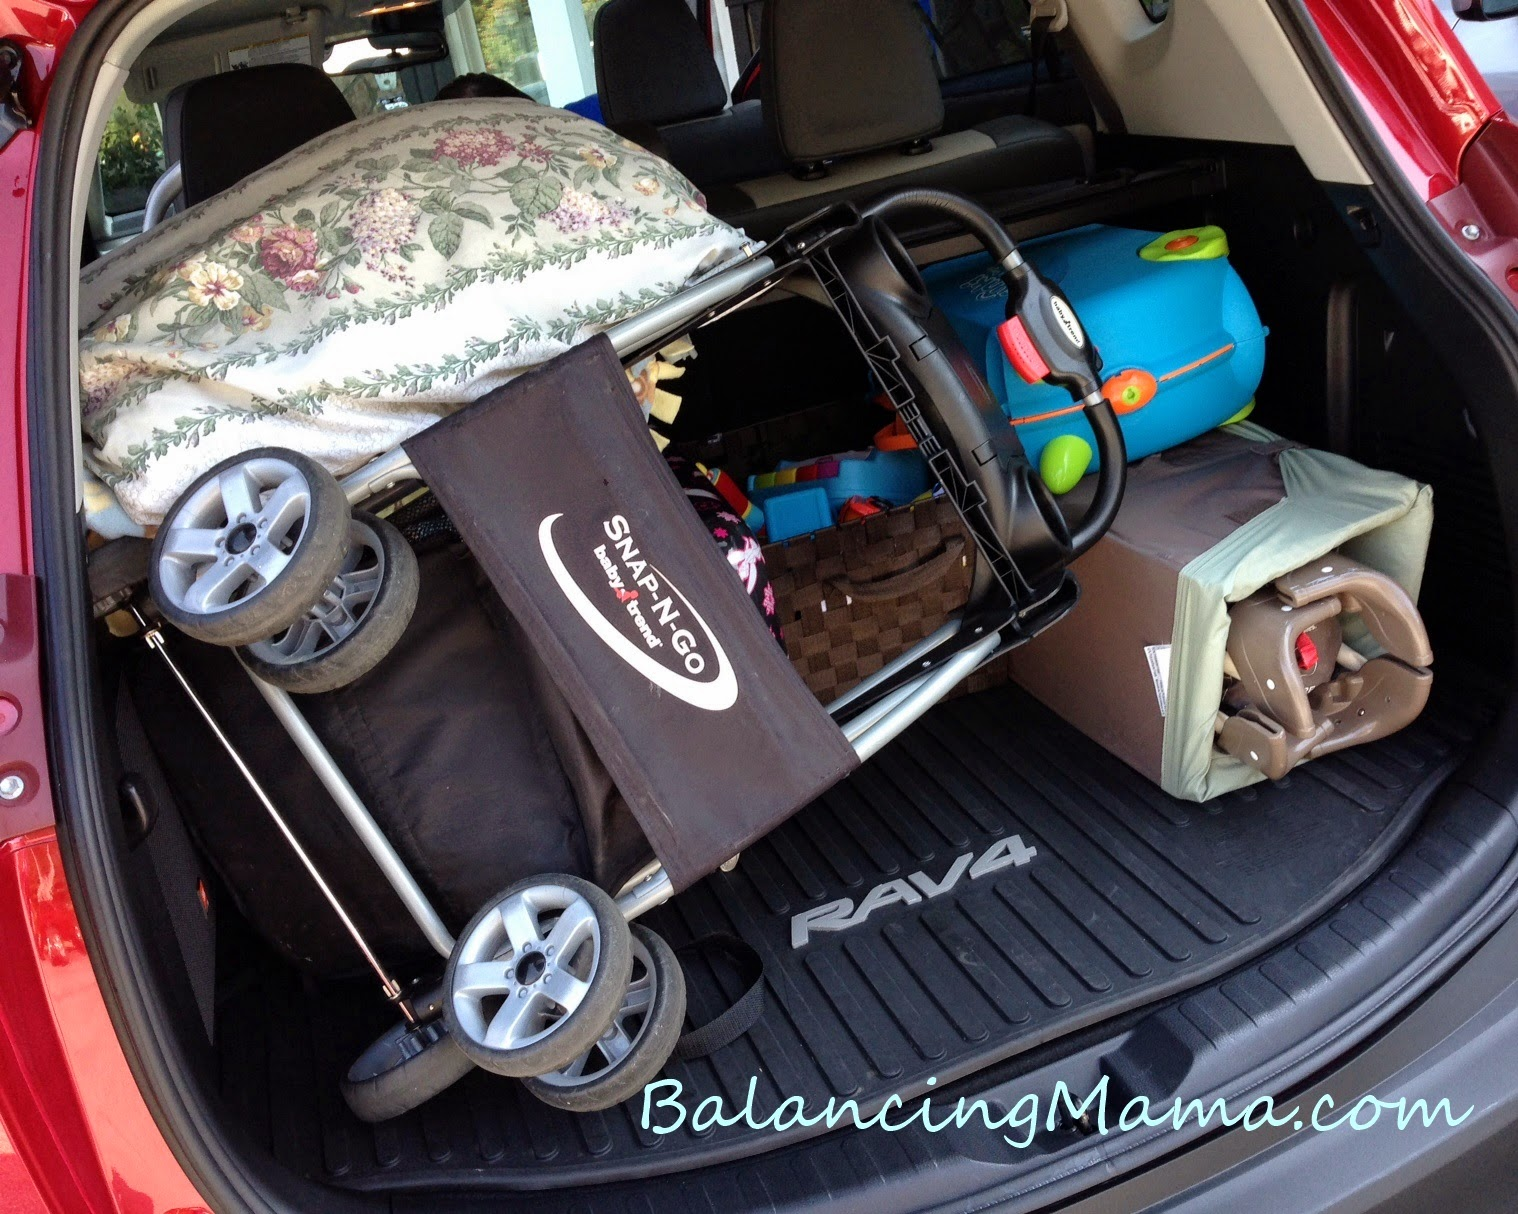 From Balancingmama Our Family Road Trip In The Toyota Rav4